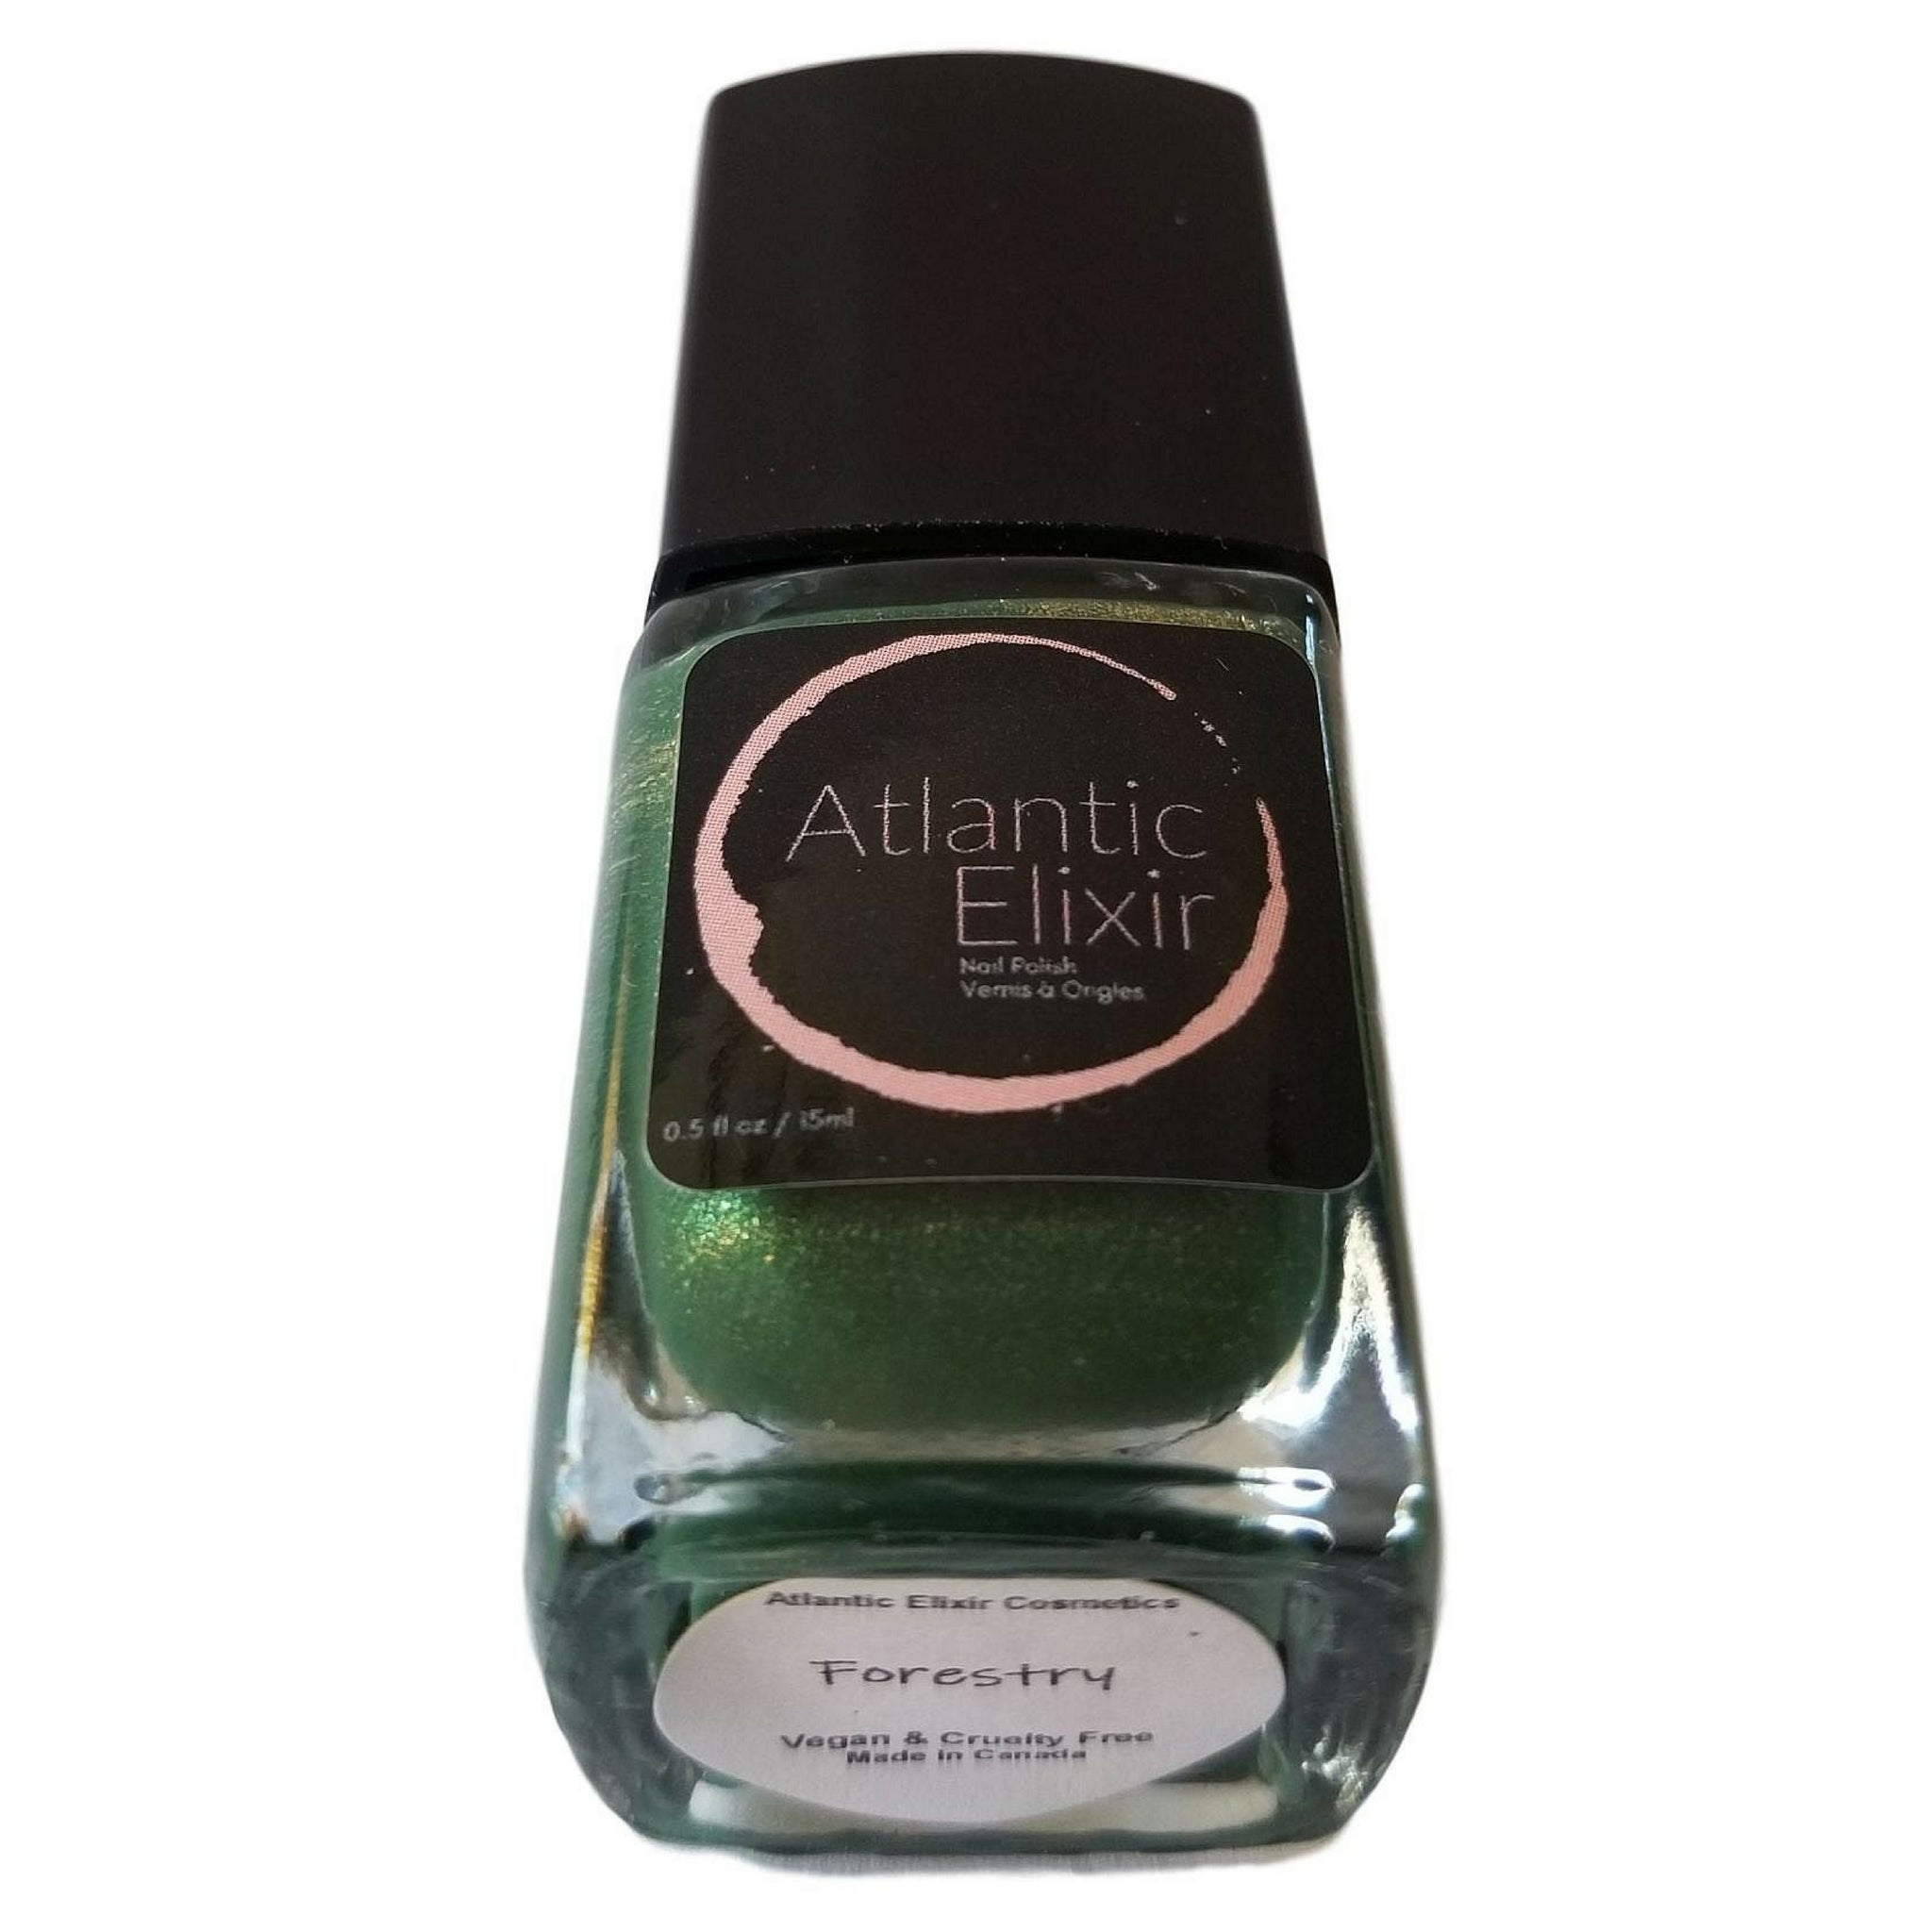 Forestry | Artisan Nail Polish by Atlantic Elixir | Enter the forest with its golden toned depths of lush green. A unique tone for admiration of all that lives.